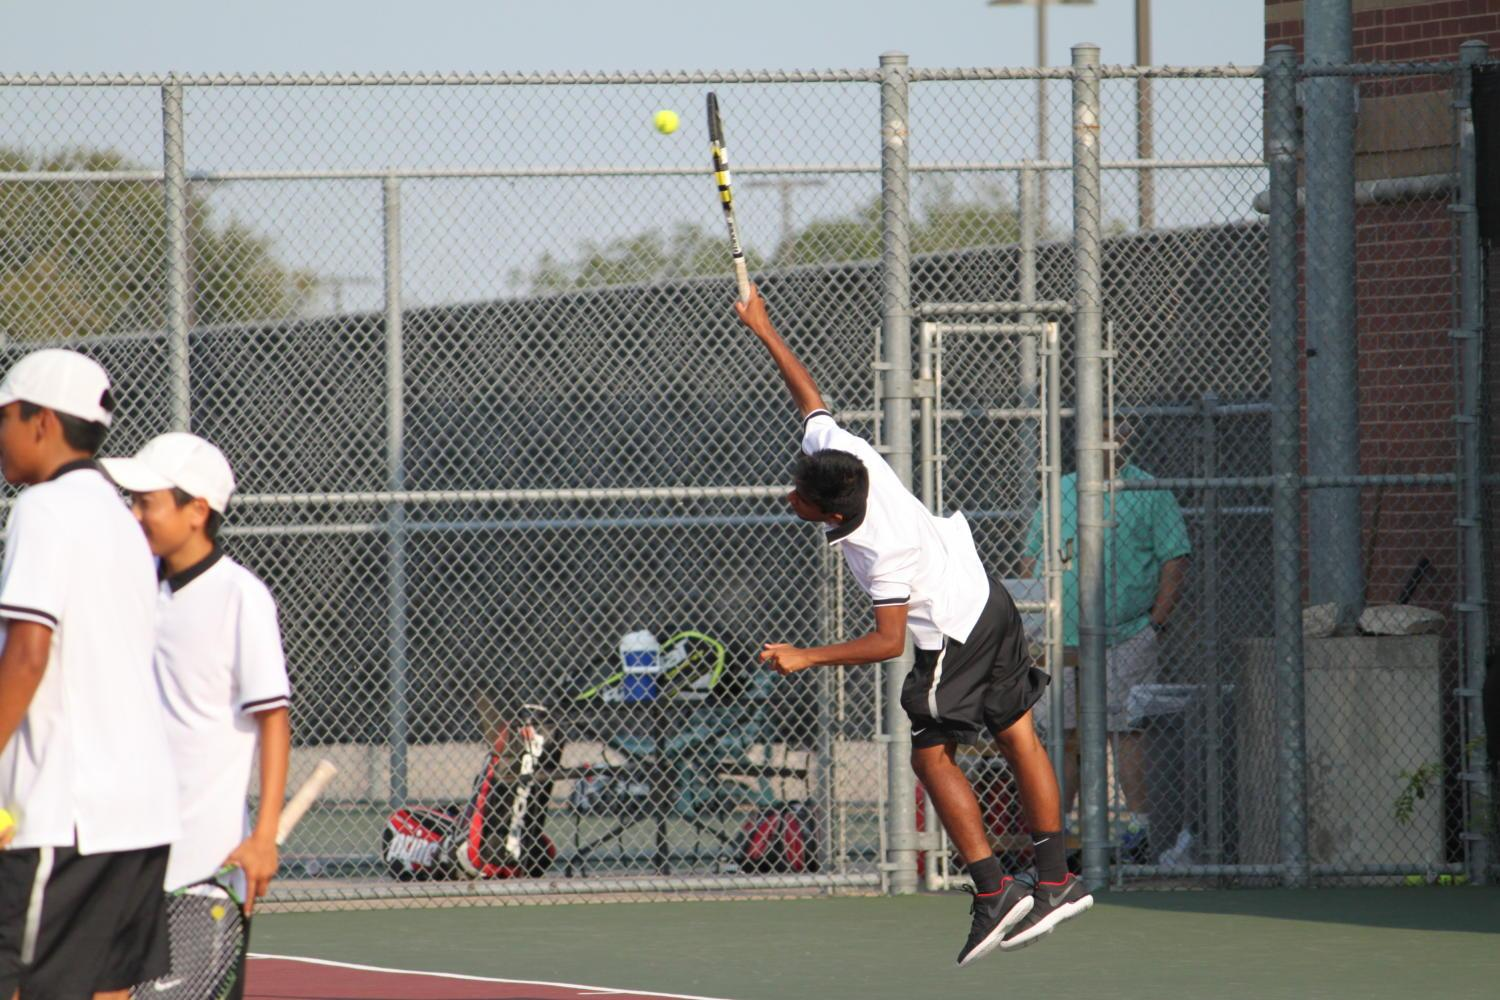 Coppell High School senior Yash Reddy jumps up at an opportunity to return a strong shot against Lake Highlands in his doubles match. Reddy and his doubles partner took away a 6-2, 6-1 victory on Sept. 5 at the CHS Tennis Center.